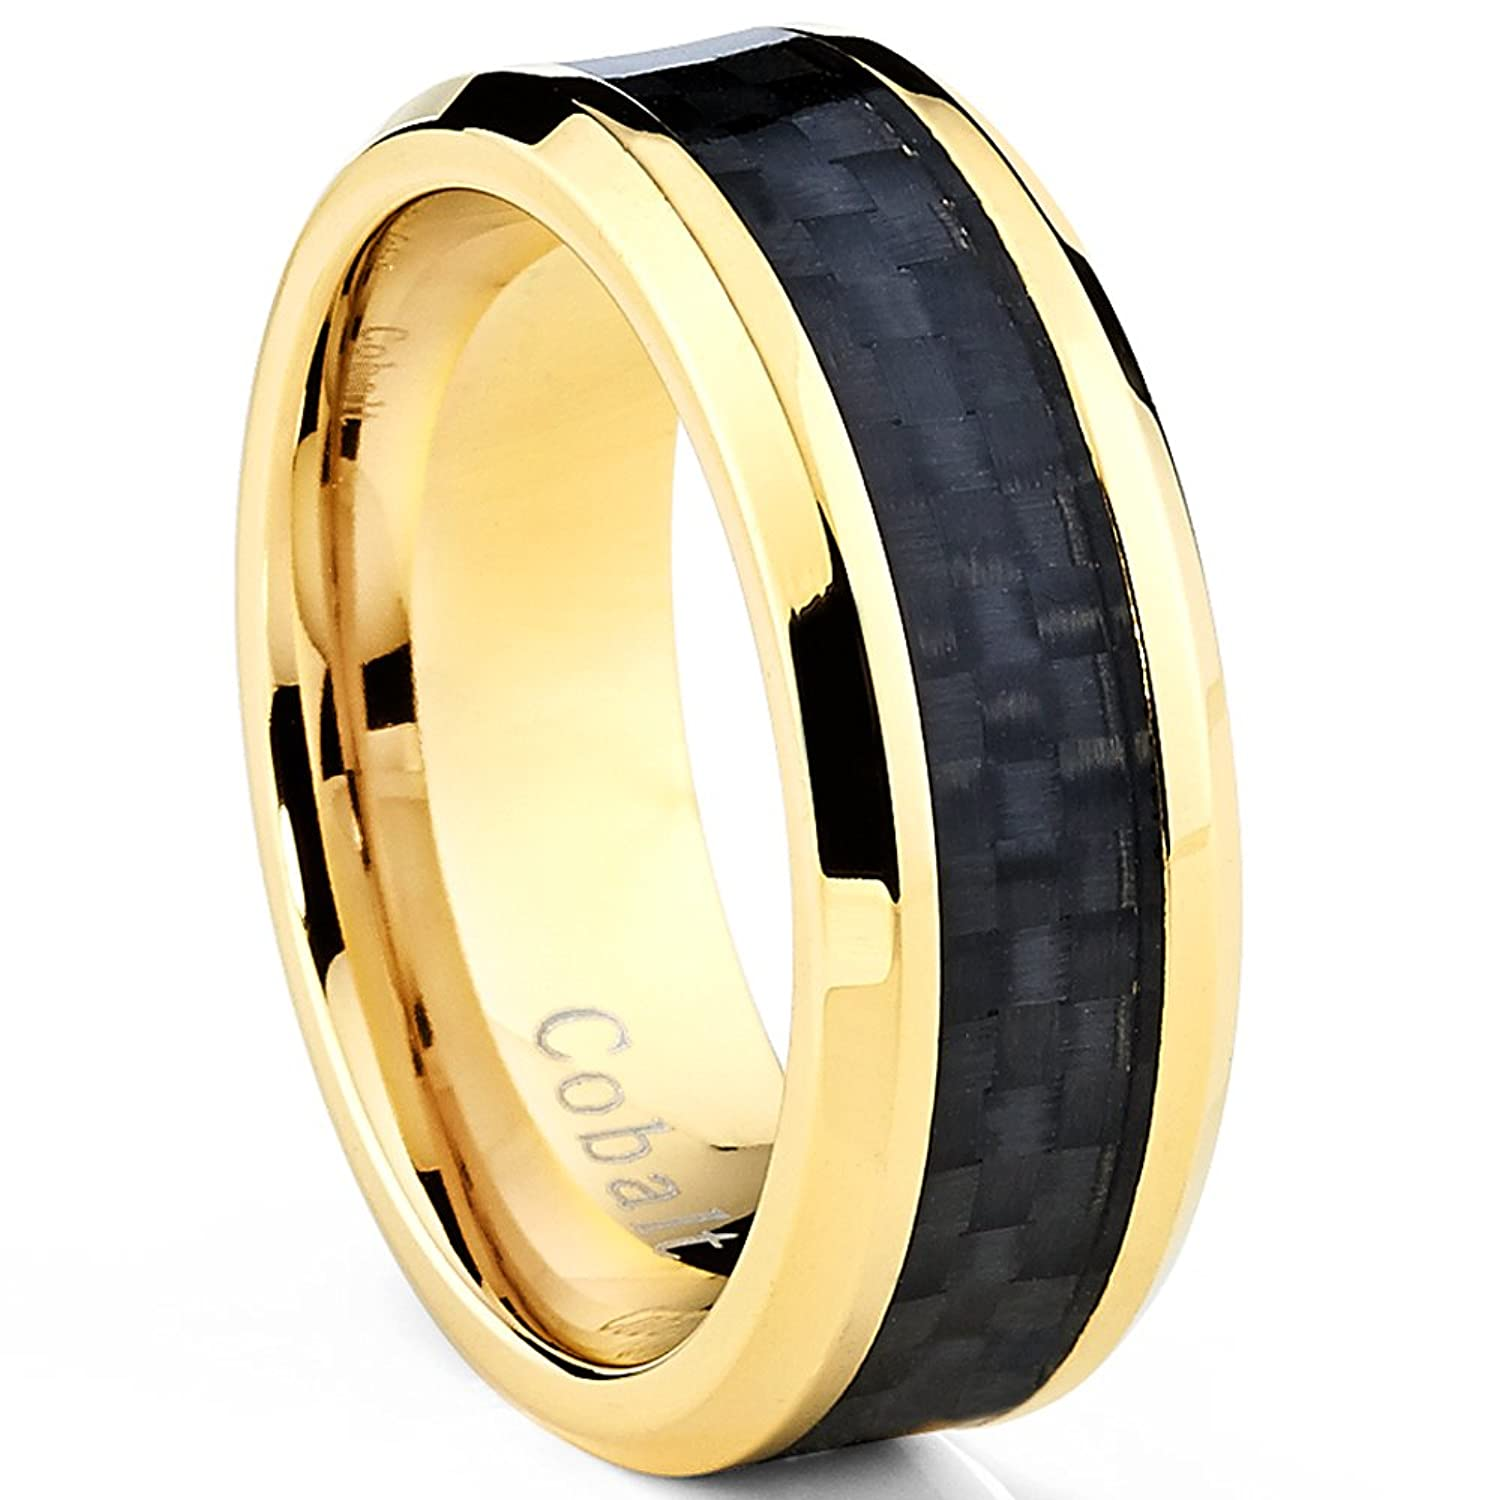 Goldtone Plated Mens Cobalt Wedding Band Ring with Black Carbon